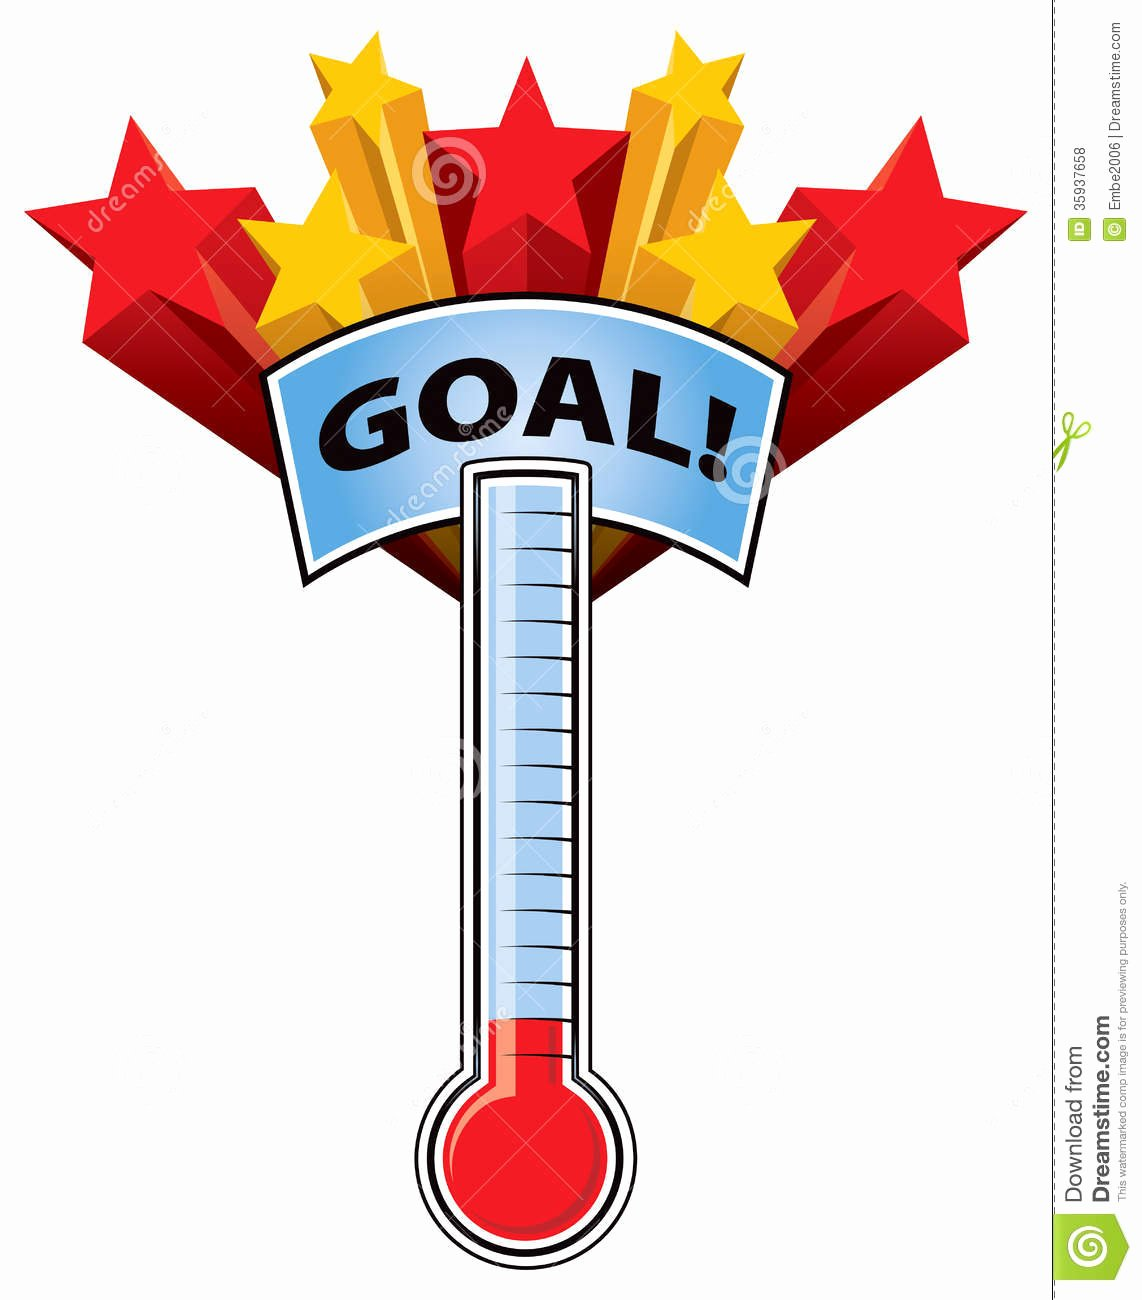 Fundraising thermometer Template Editable Elegant Fundraising thermometer Clip Art